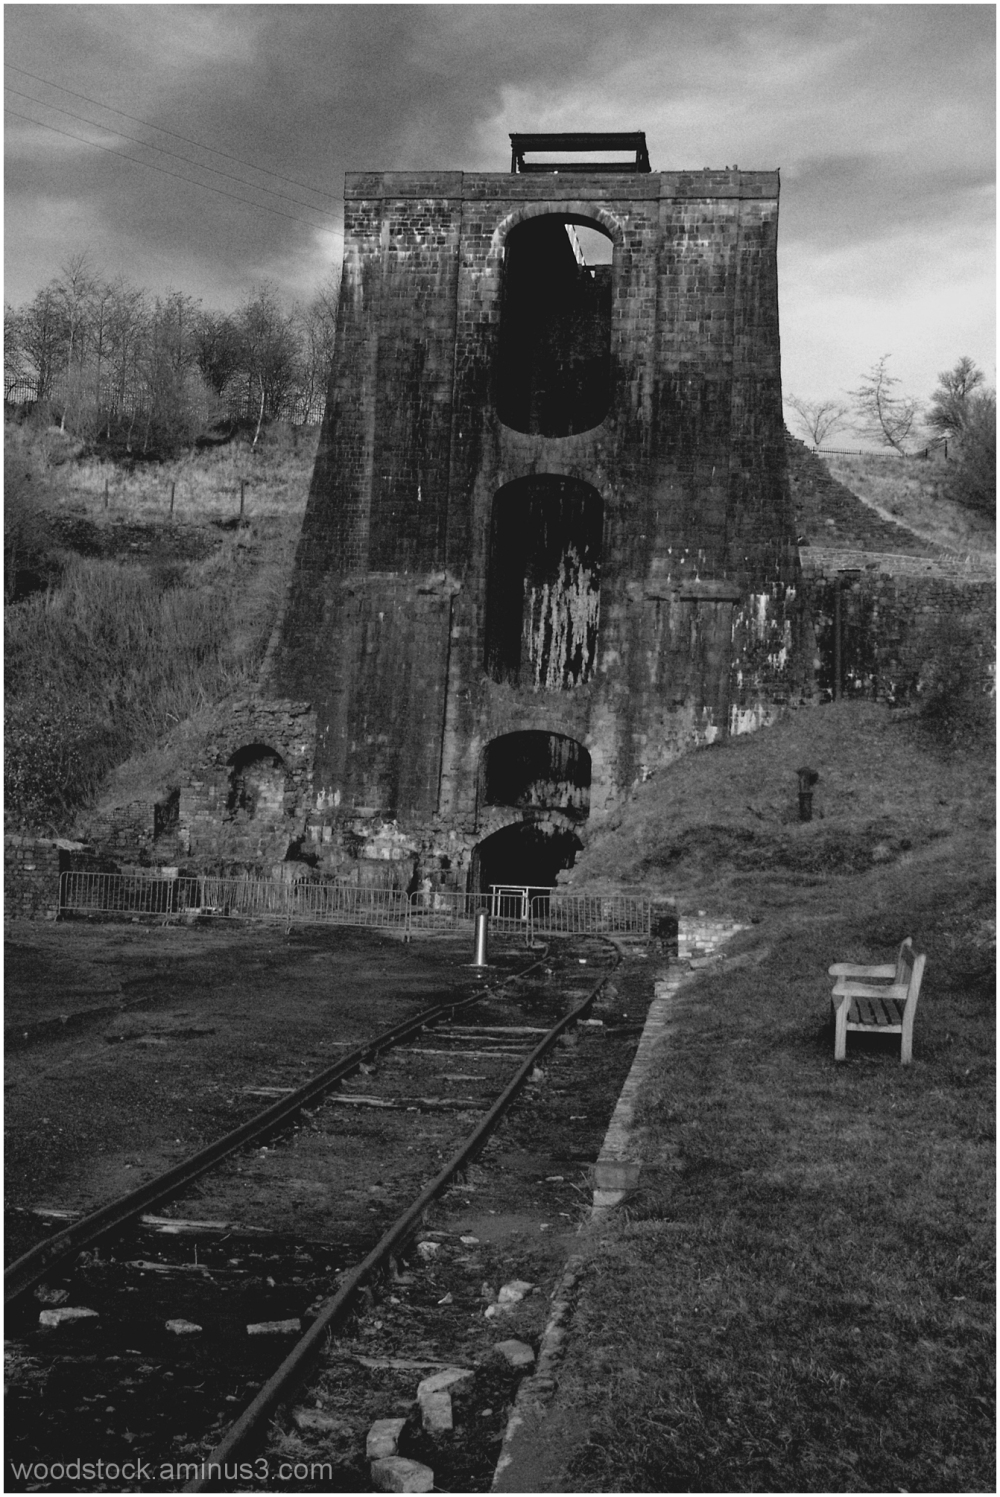 Blaenavon Iron Works - The Balance Tower 2 of 5